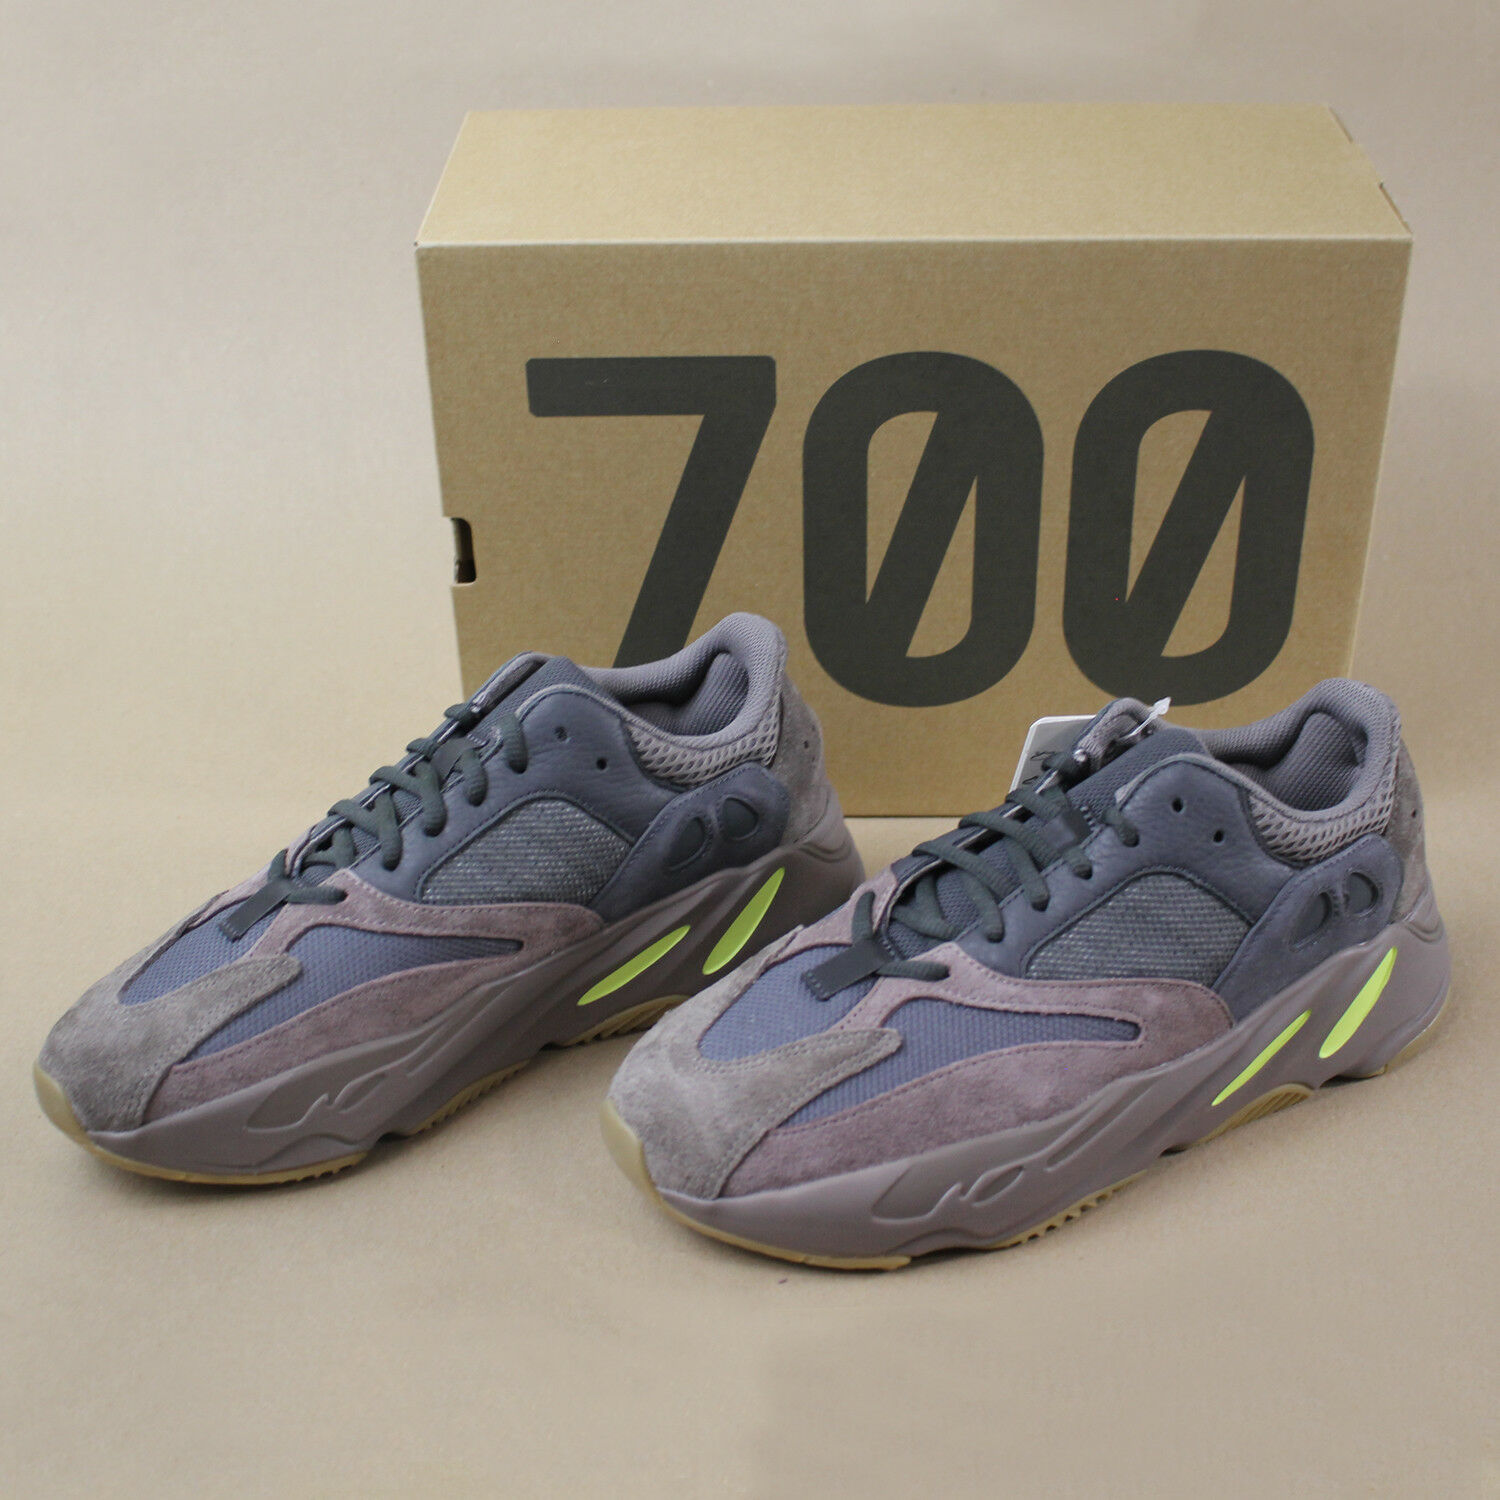 Yeezy Boost 700 Mauve By Adidas Size 9.5 NEW IN BOX with Free Shipping